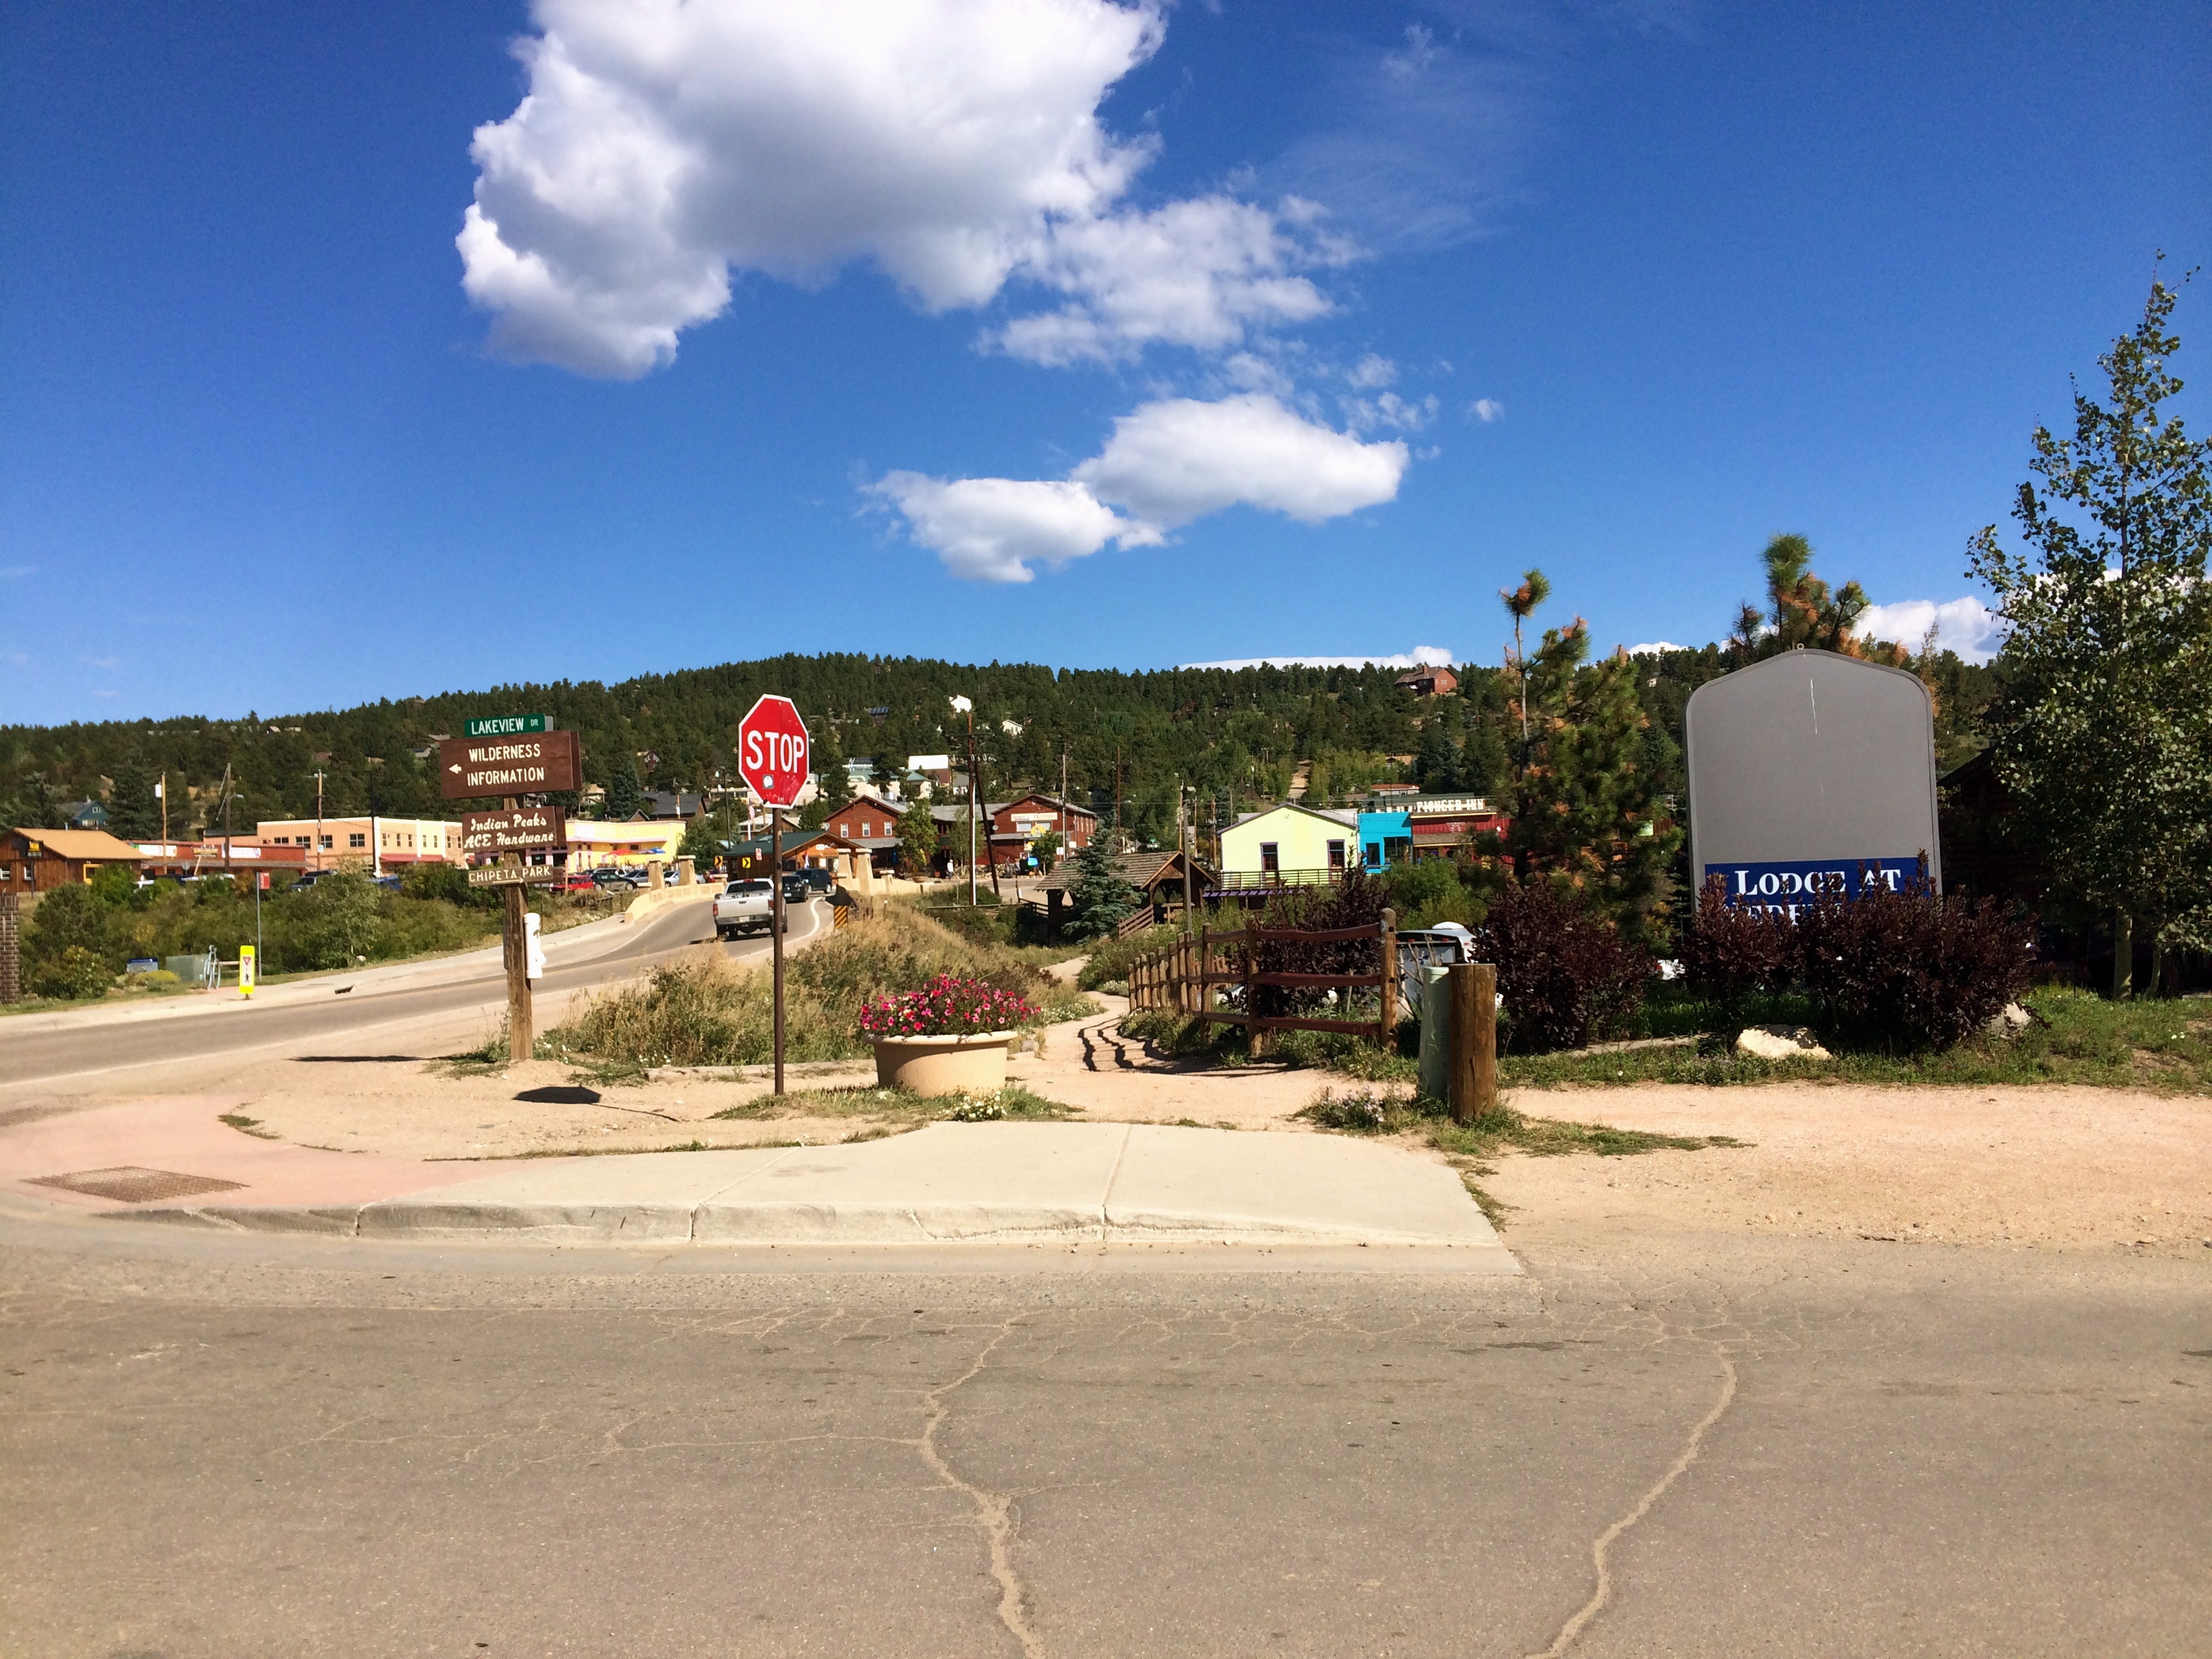 The town of Nederland, CO